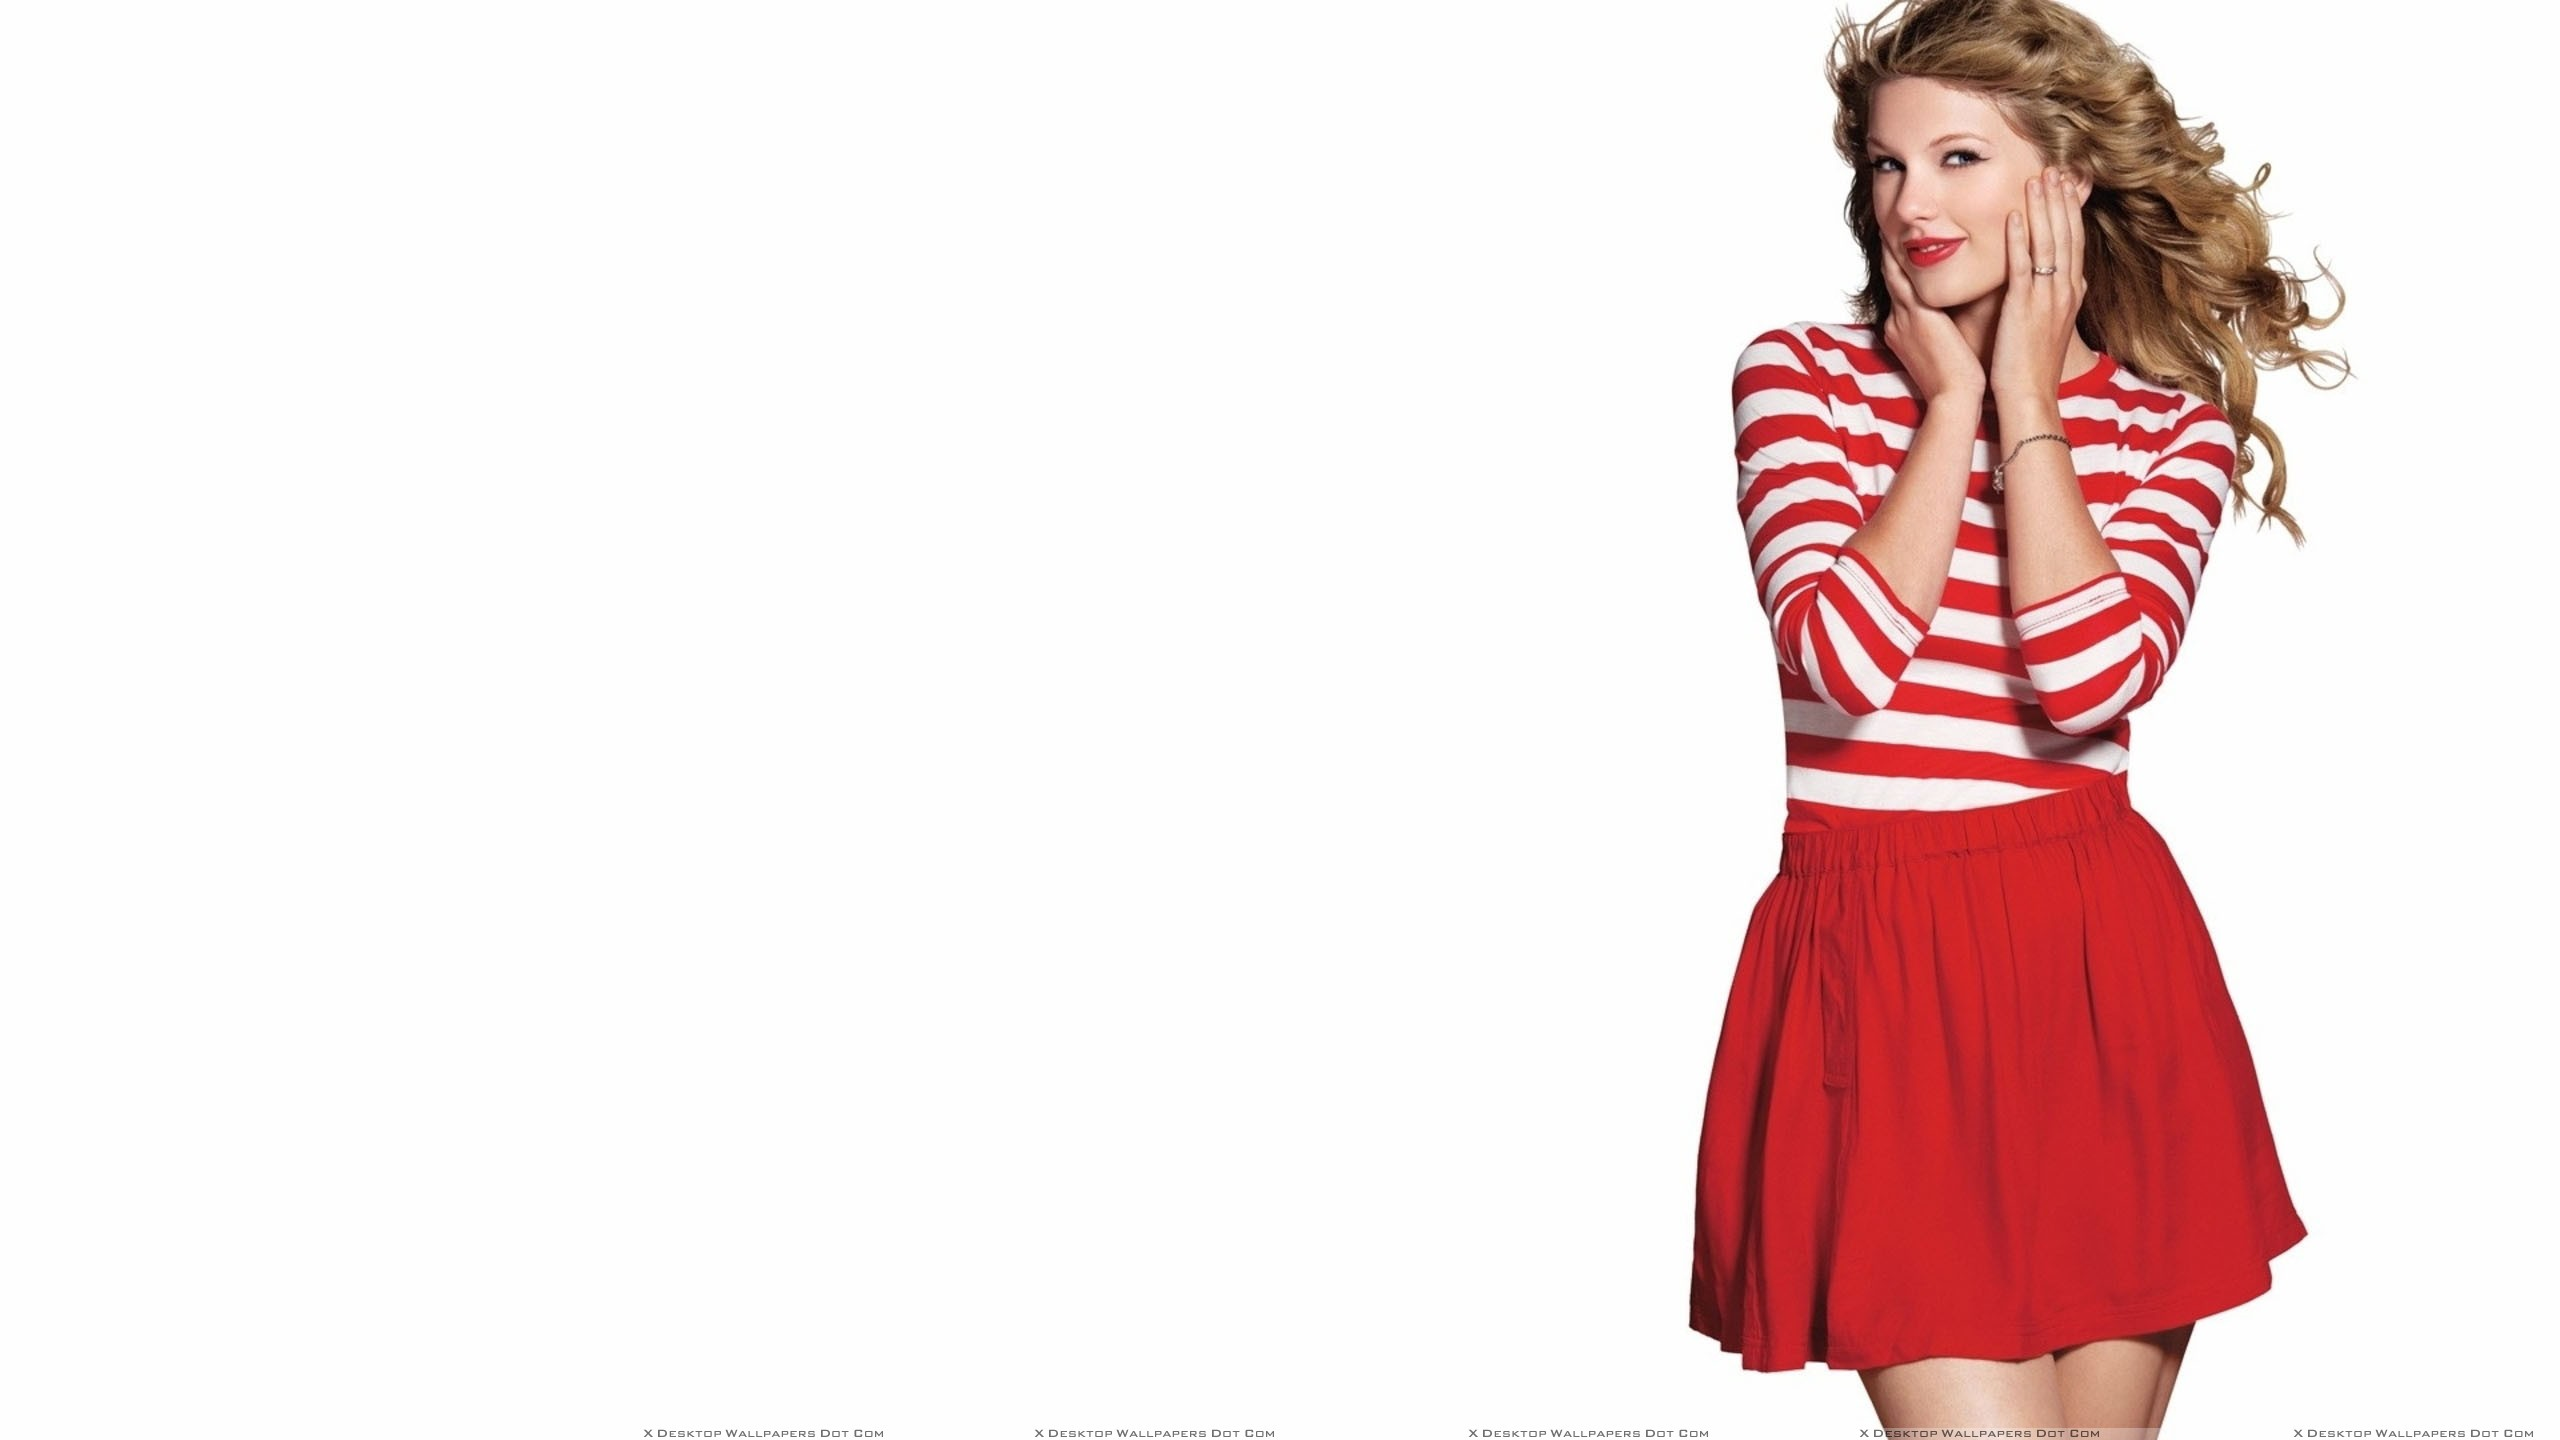 Taylor Swift Wallpapers, Photos & Images in HD